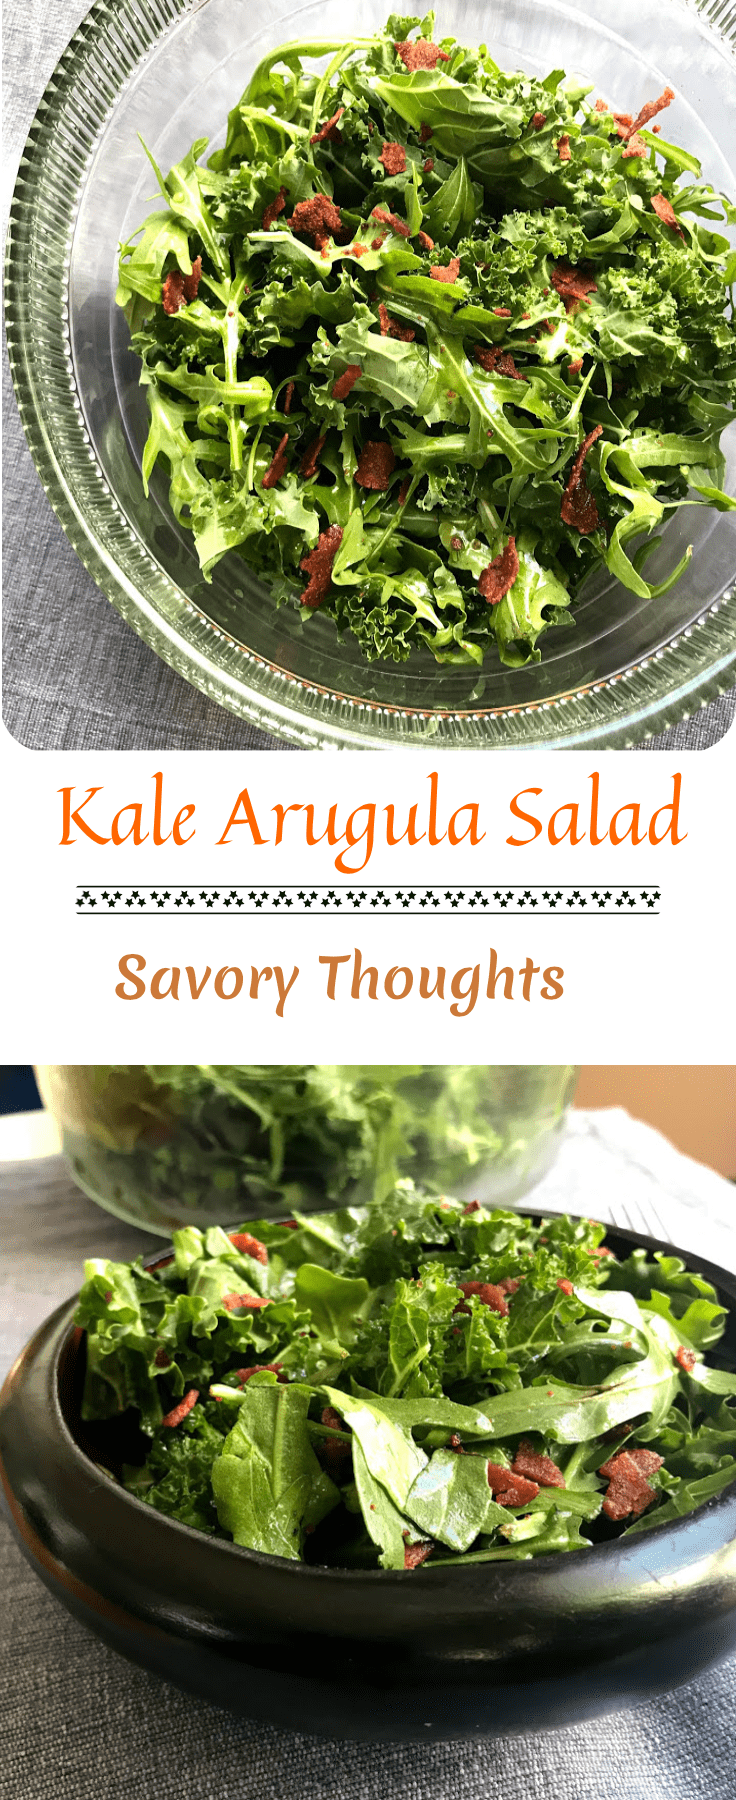 Healthy Kale Arugula Salad (recipe) topped with turkey bacon apple cider vinaigrette. Savory Thoughts. #kale #arugula #salad #kalearugulasalad